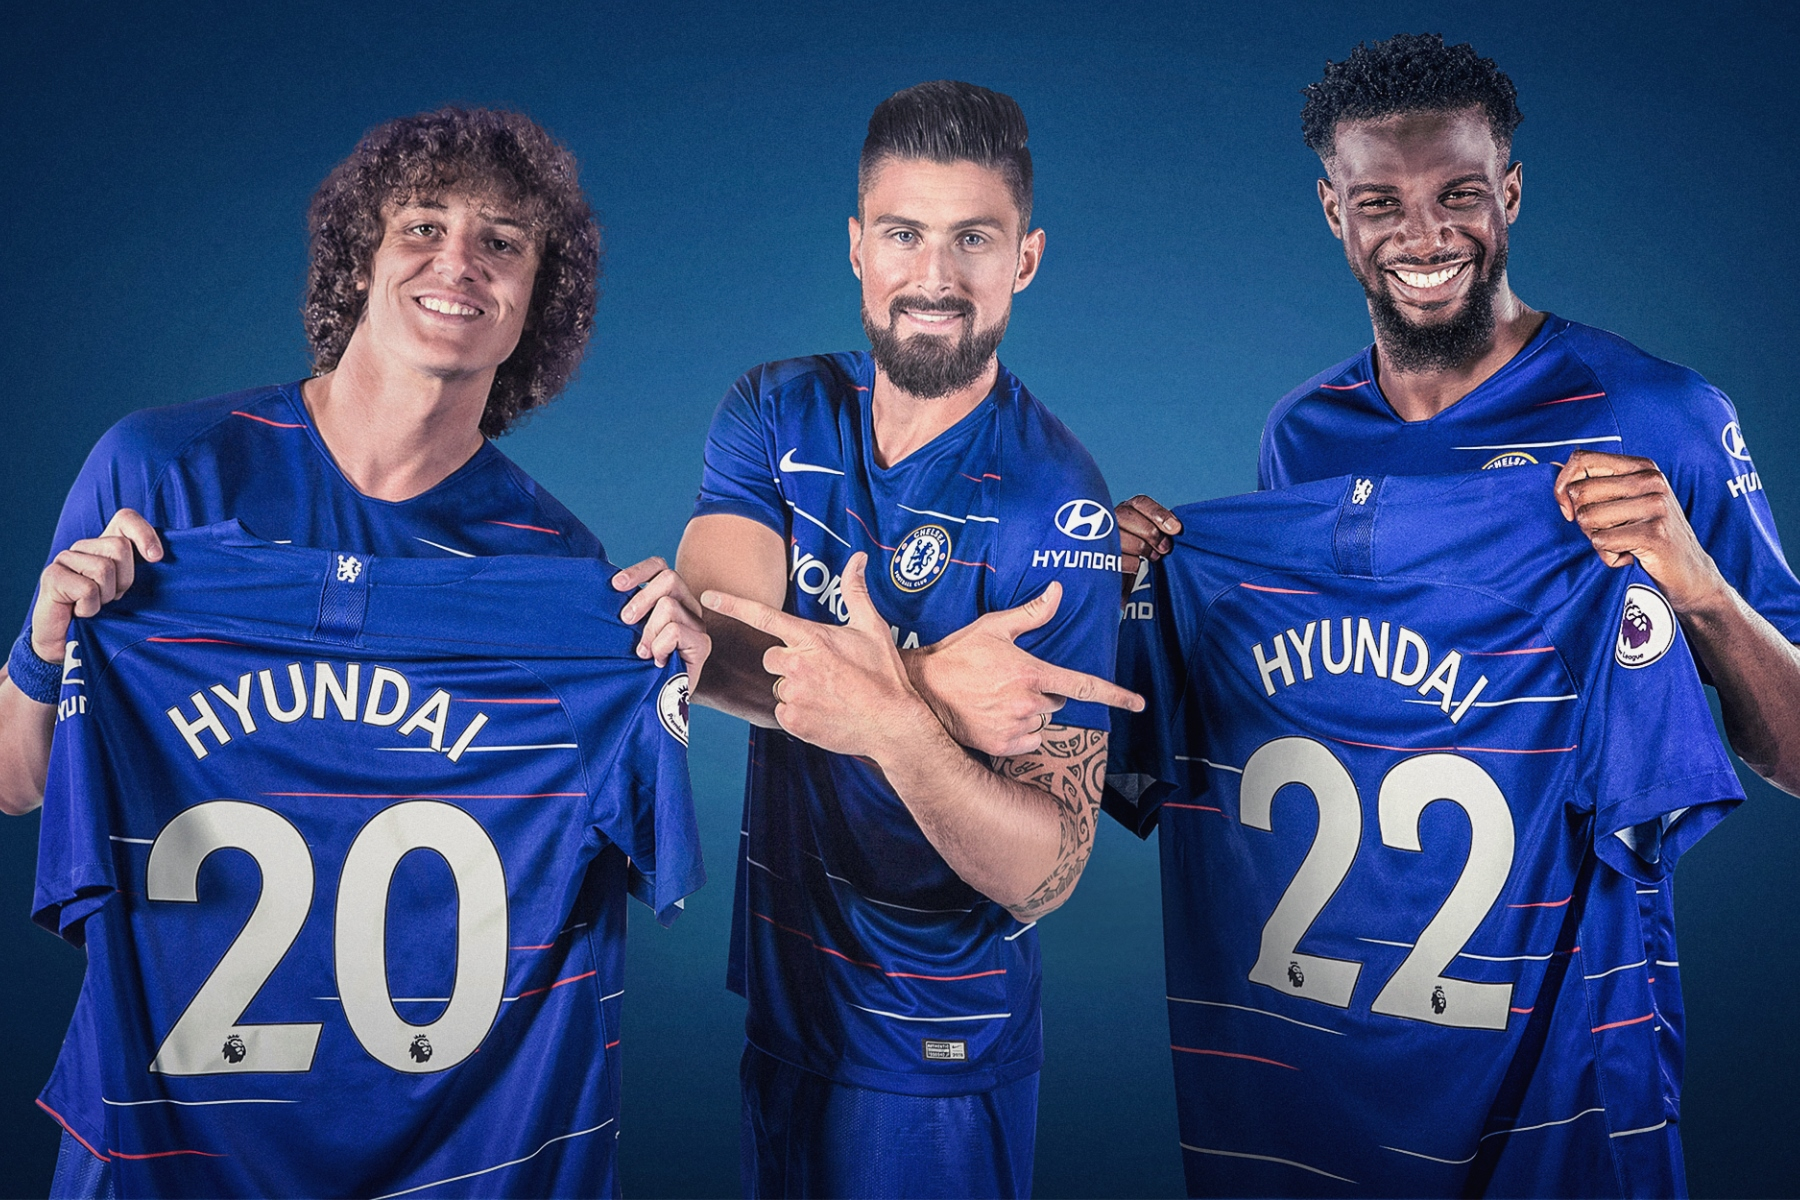 Hyundai Chelsea Football Club automotive partner